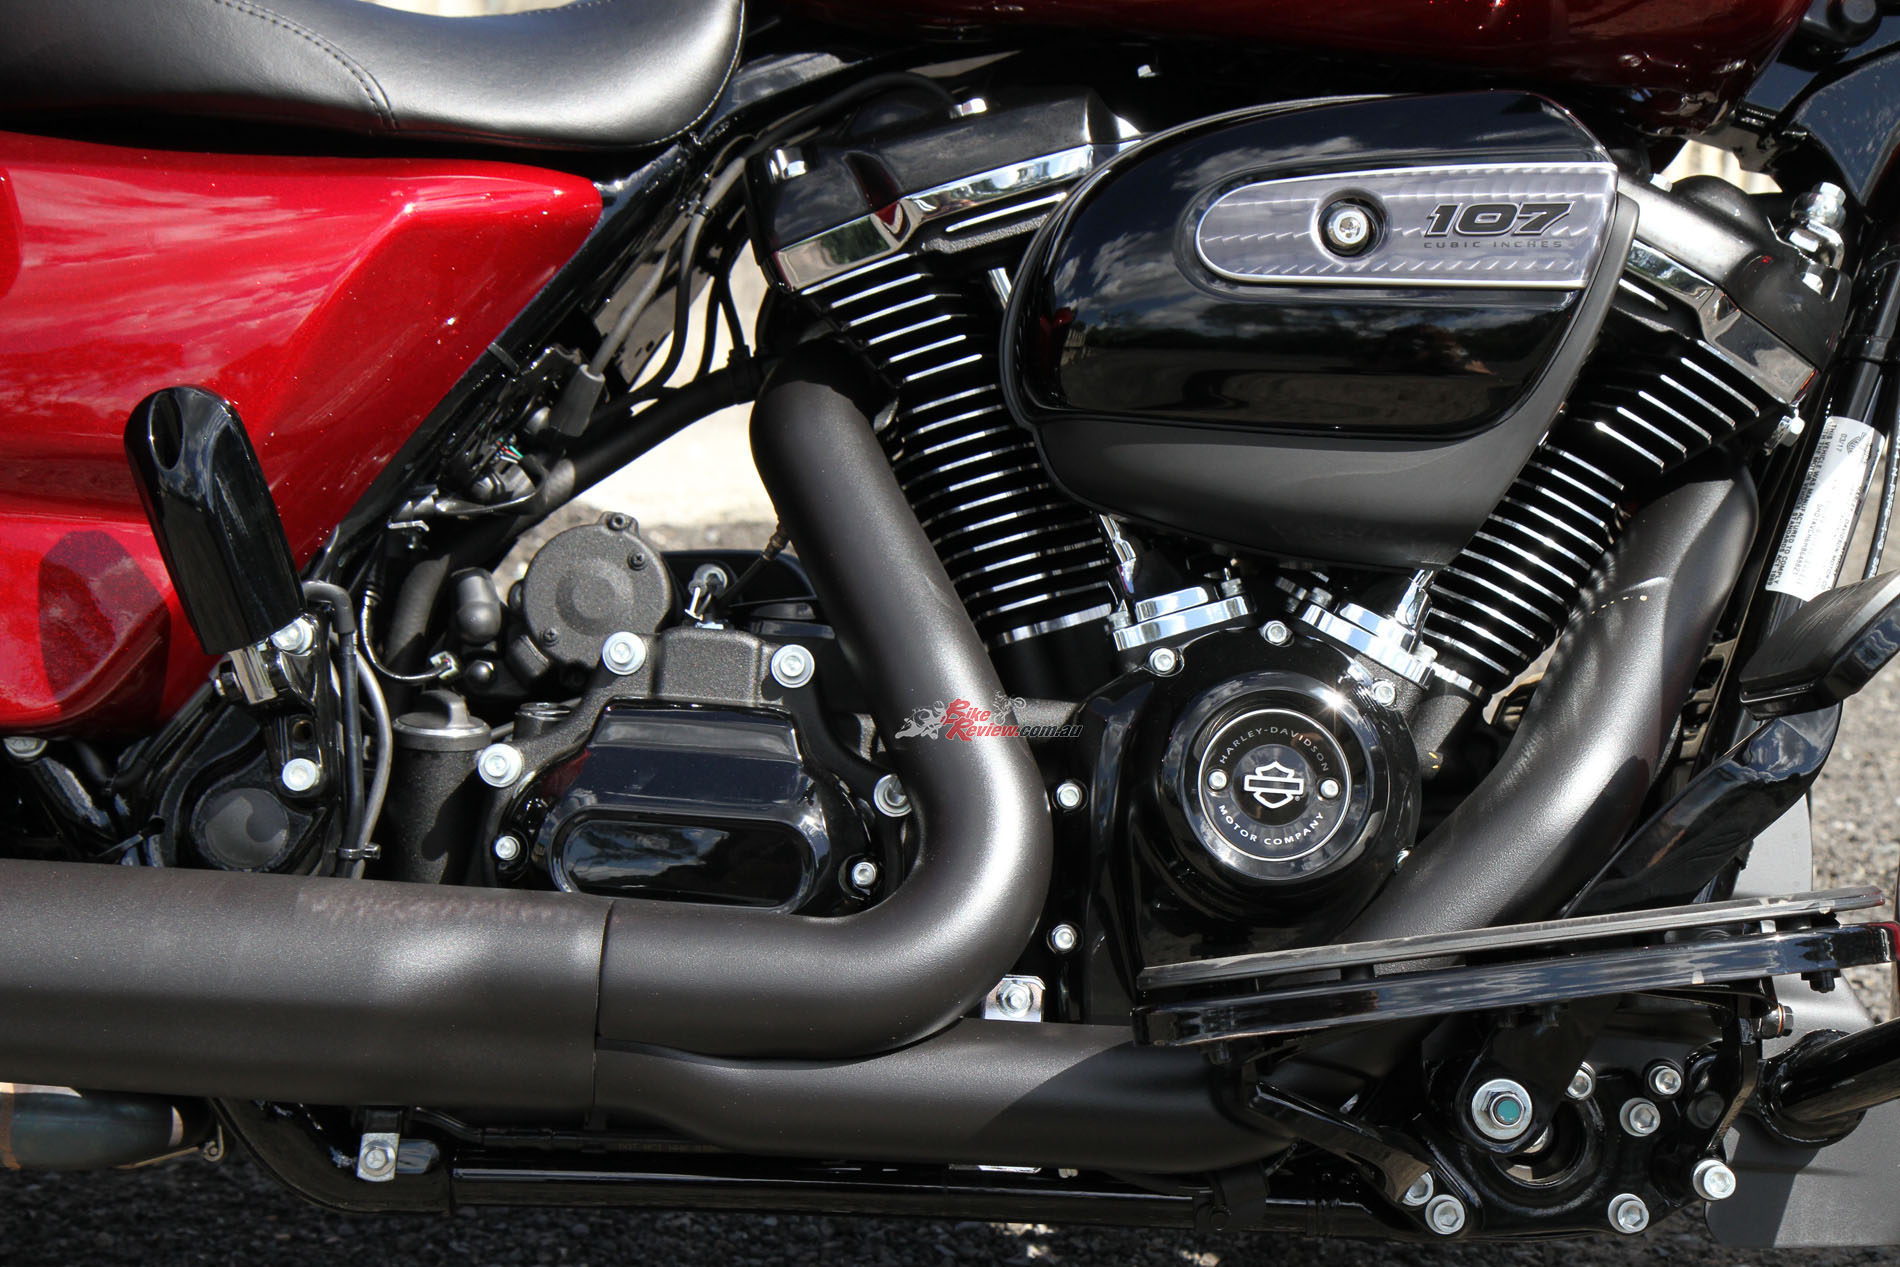 The Milwaukee-Eight engine offers strong performance from low rpm to grabbing a handful, with a rev limiter ensuring you do no harm (to the engine)